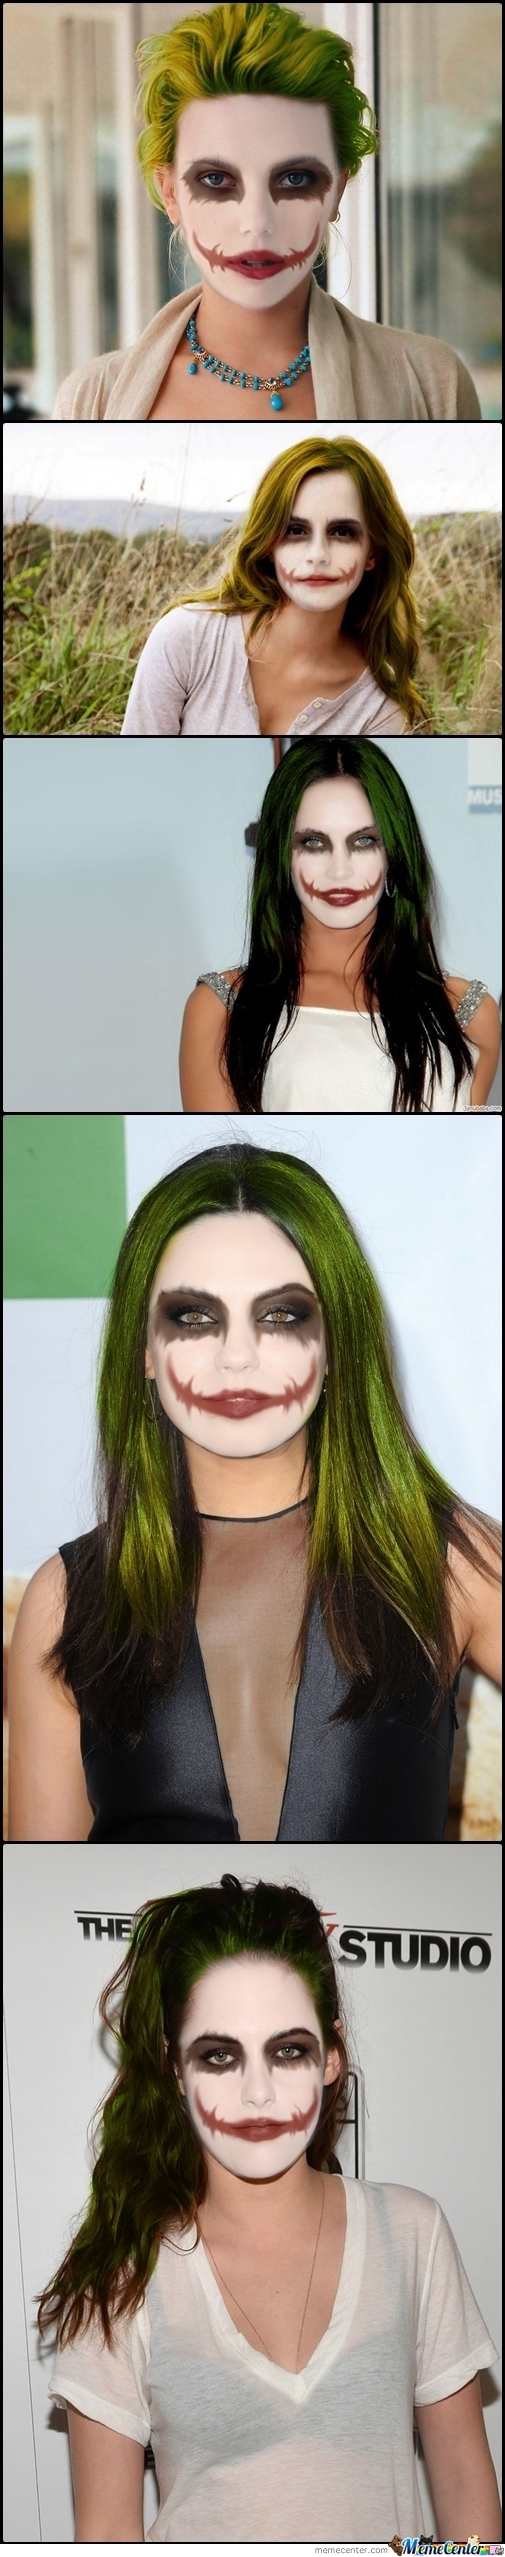 Why So ????